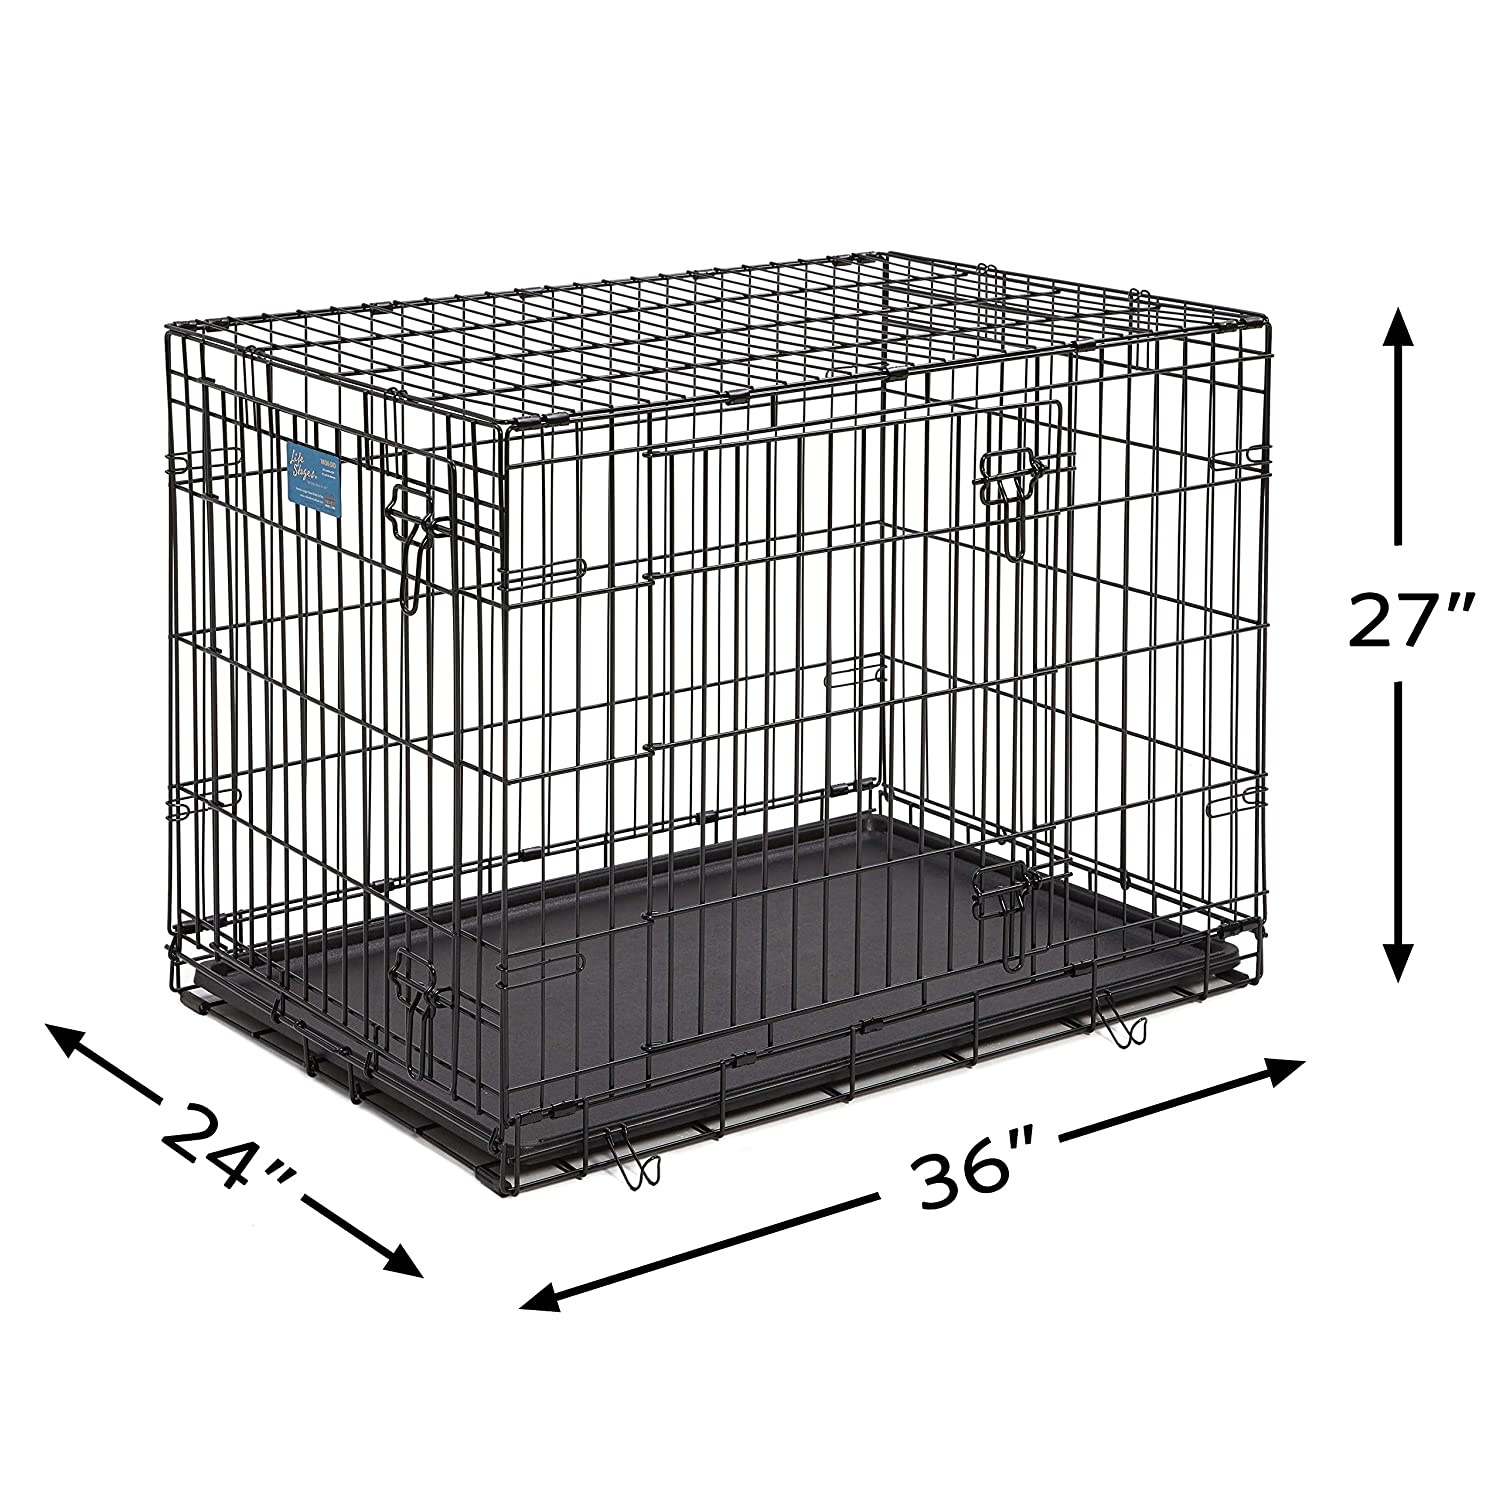 Amazon.com : Dog Crate | MidWest Life Stages 36"|1500|1500|?|en|2|431d5005db0448595ef85e4ec40cbb1f|False|UNLIKELY|0.37303465604782104